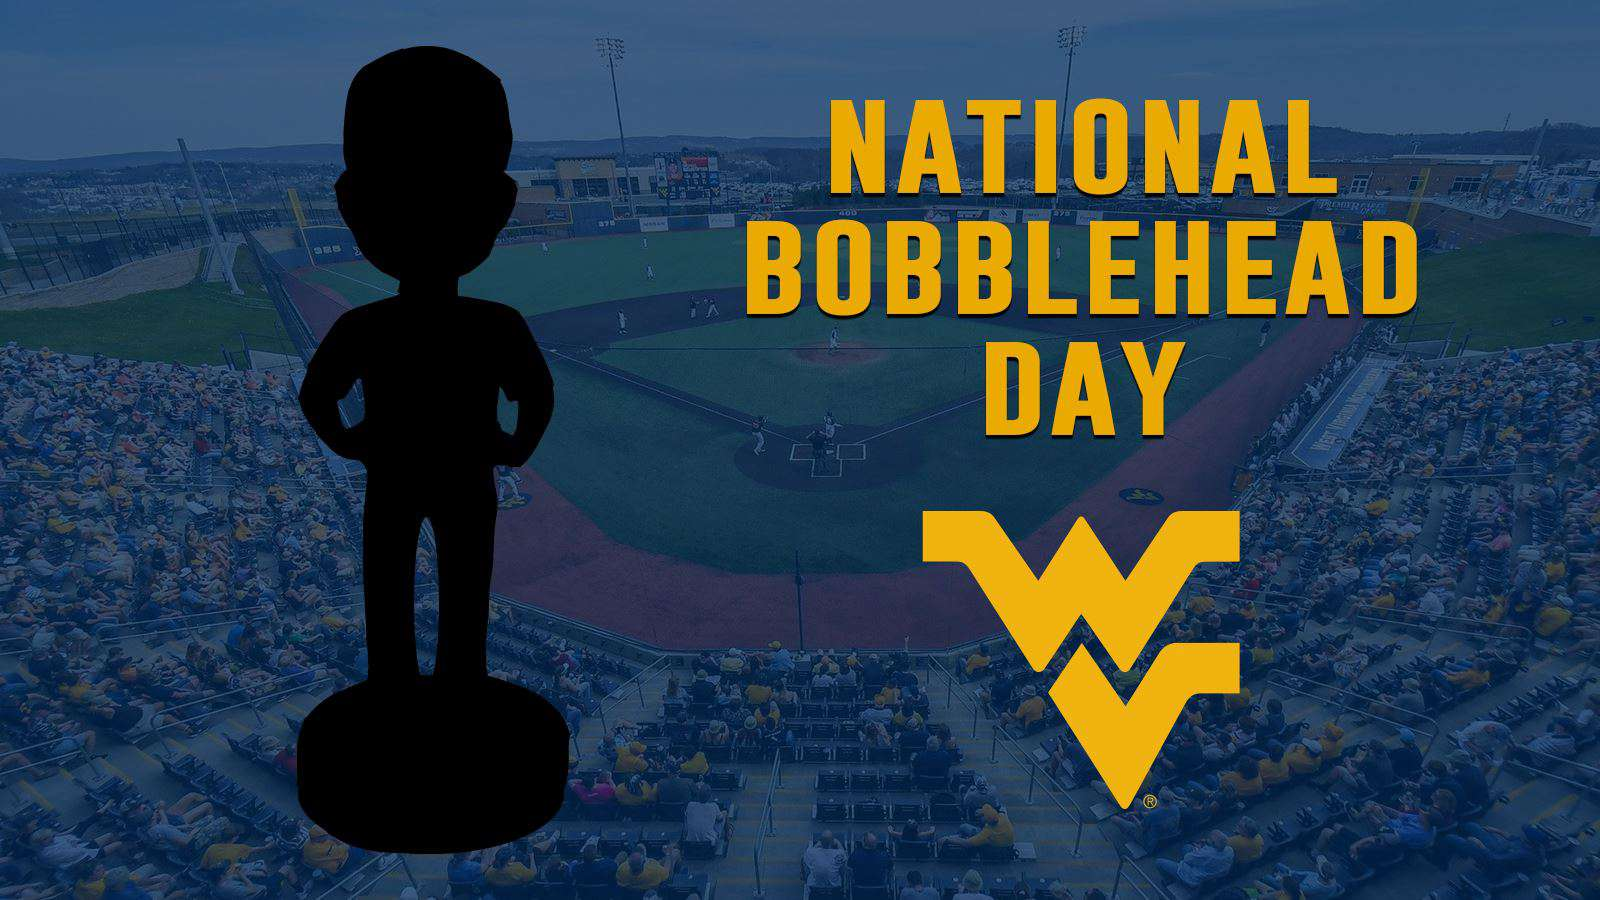 National Bobblehead Day Wishes Images download